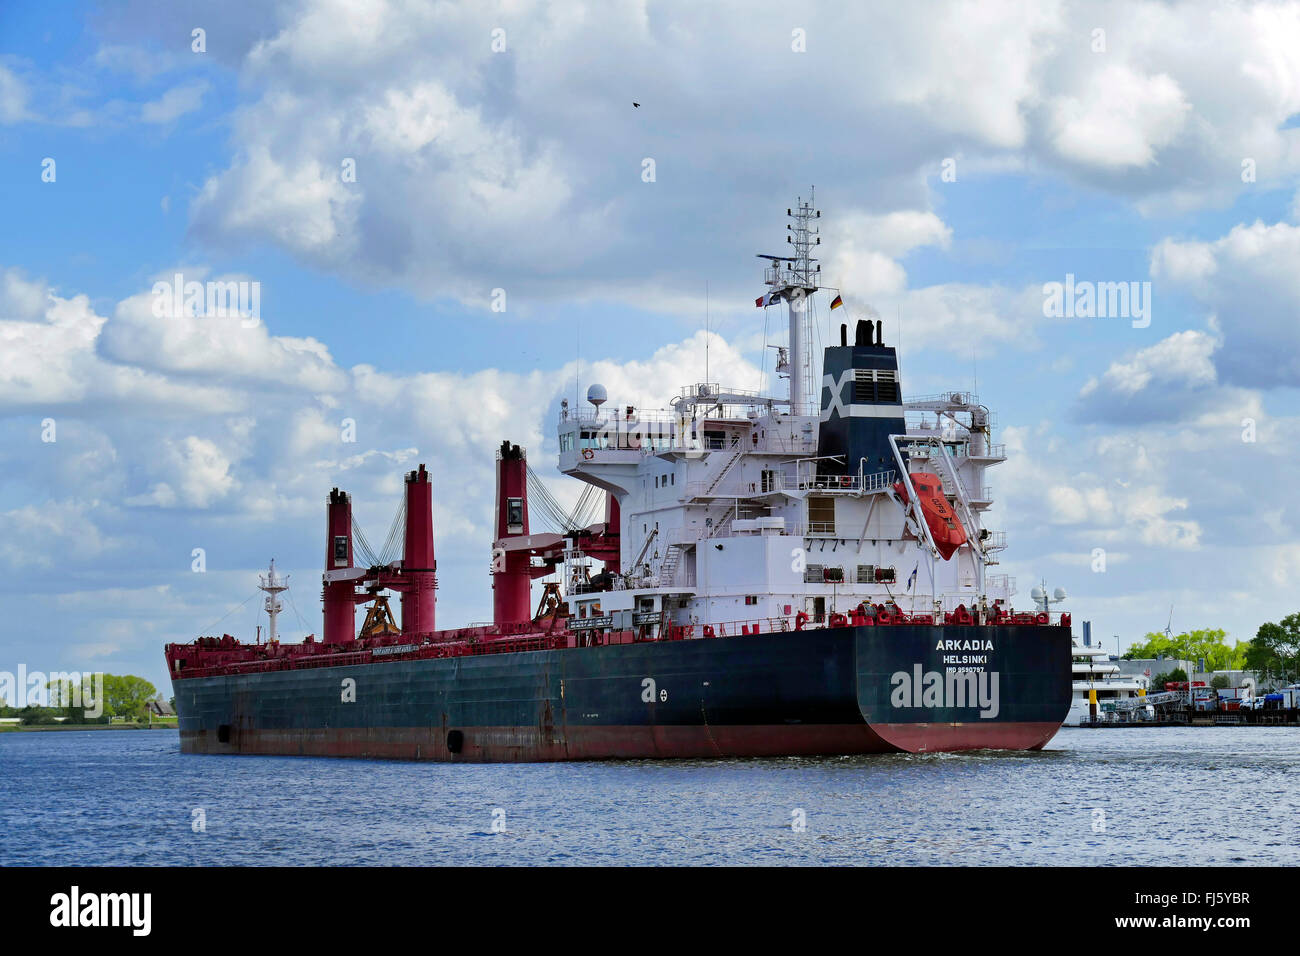 bulk carrier on River Weser, Germany, Weser, Bremen - Stock Image